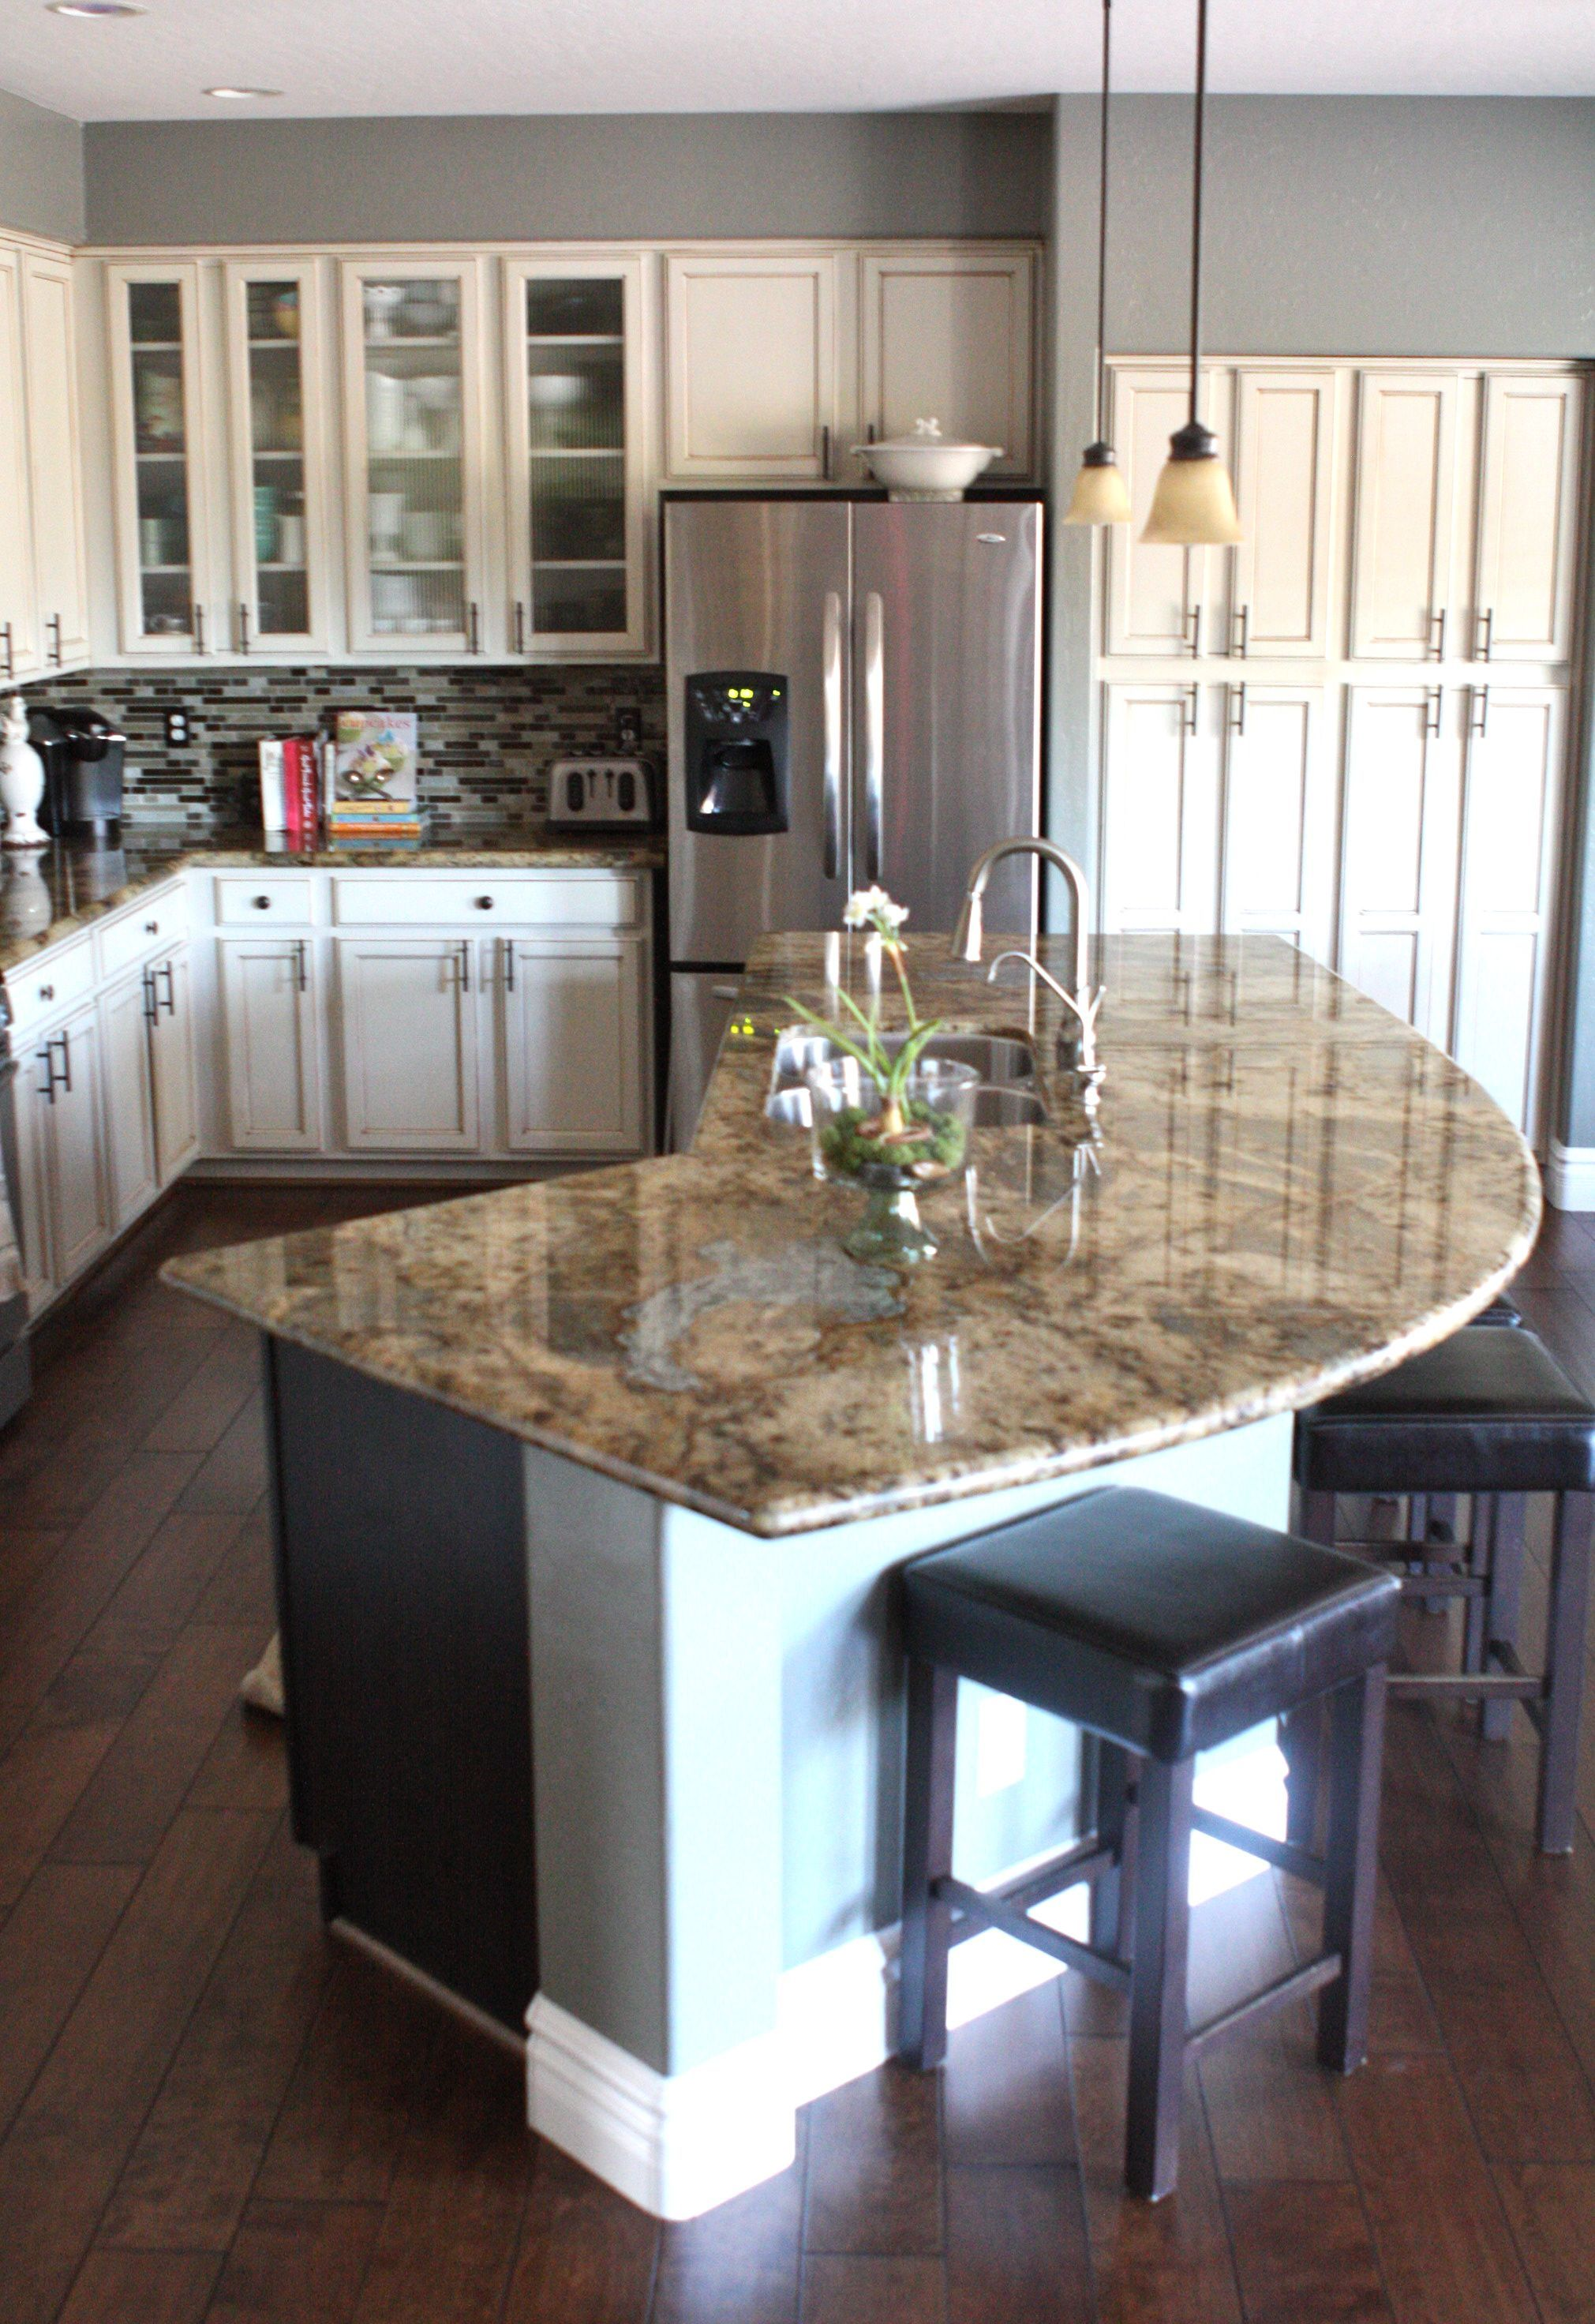 Best Kitchen Design Remodel And Makeover Your Kitchen With This Free Best Kitchen Island Ideas Curved Kitchen Curved Kitchen Island Kitchen Remodel Design